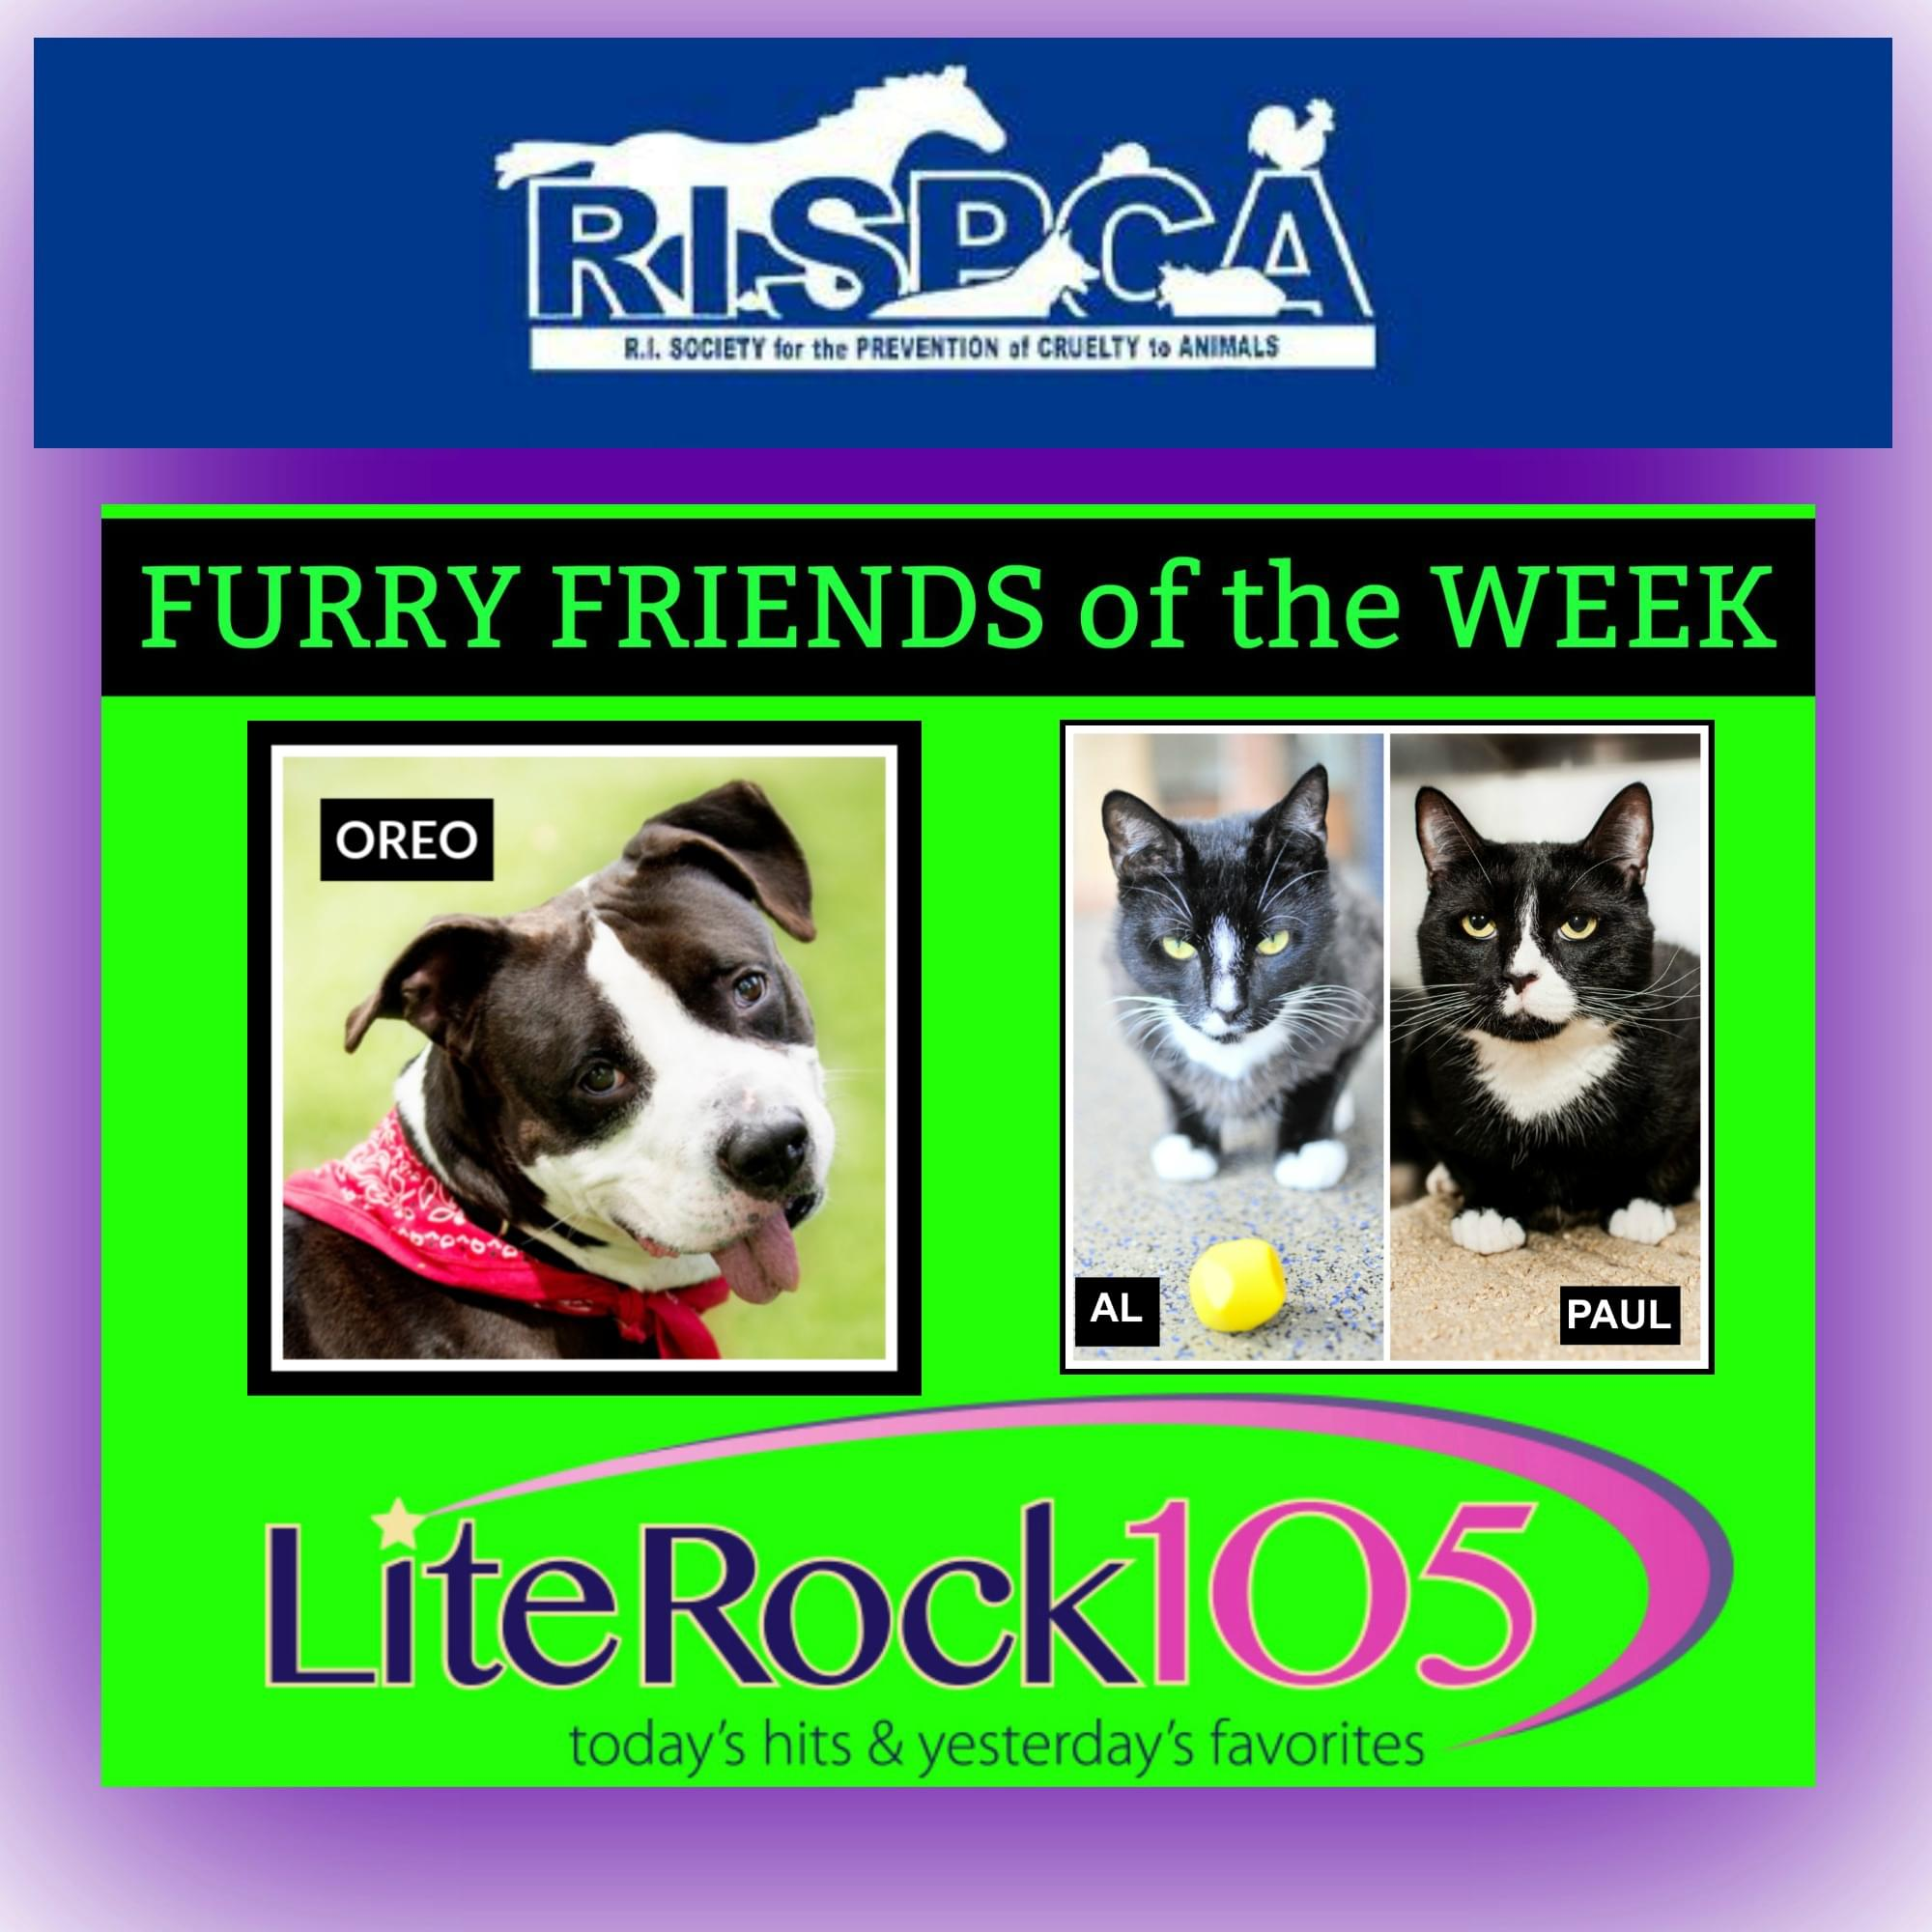 Meet Oreo, Al, and Paul! Our FURRY FRIENDS of the WEEK! (7/1/19)